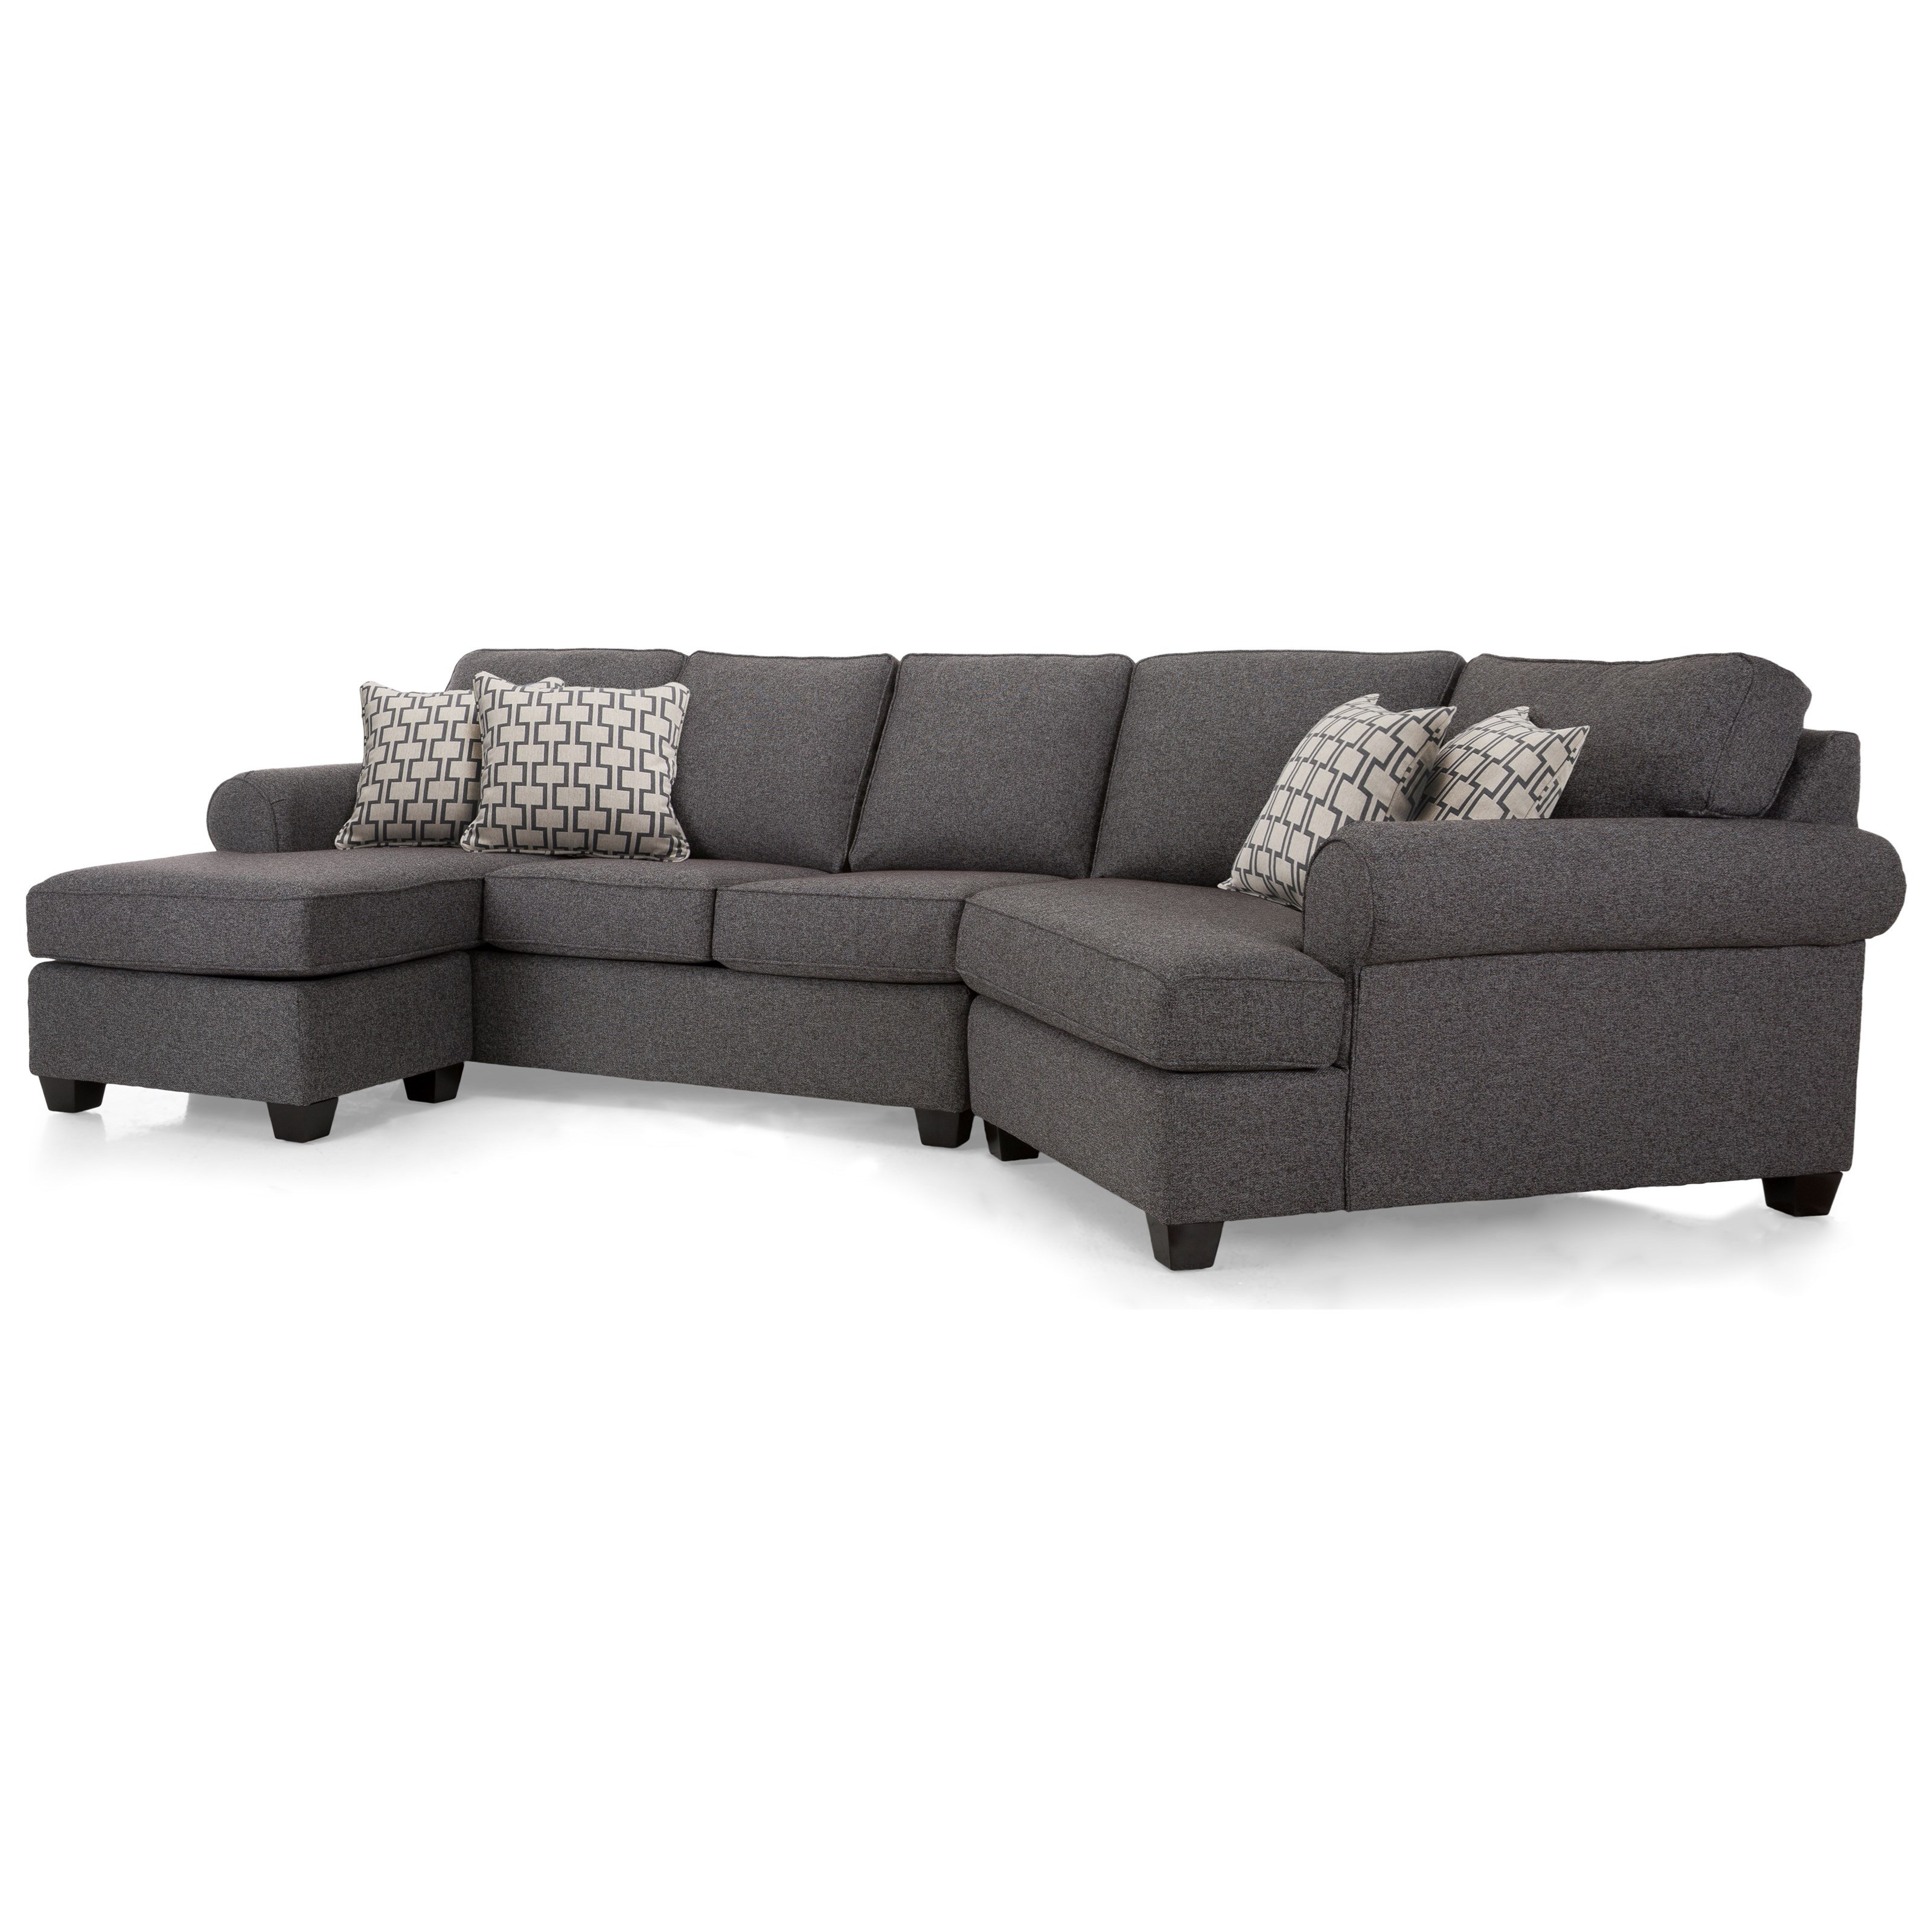 2576 Sectional by Decor-Rest at Johnny Janosik